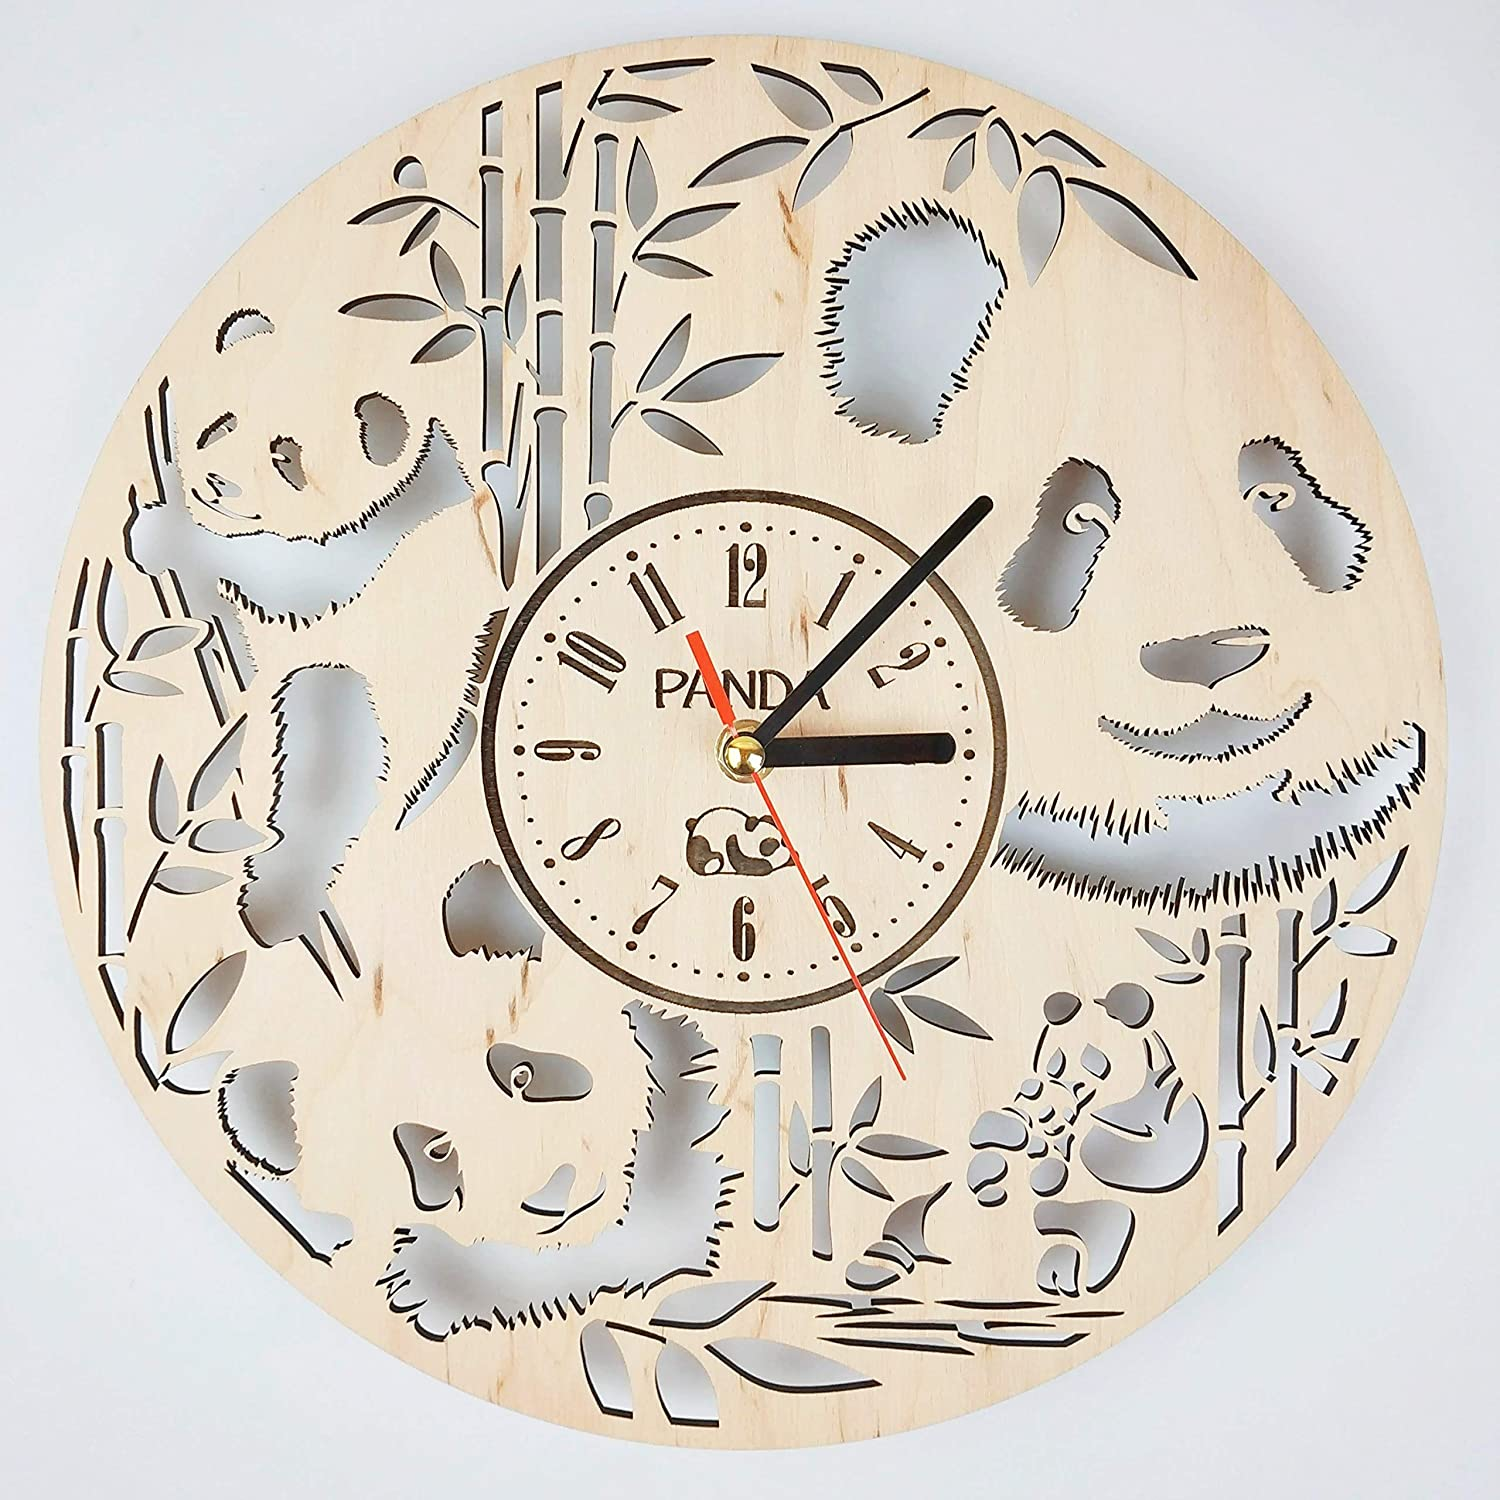 7ArtsStudio Panda Wall Clock Made of Wood - Perfect and Beautifully Cut - Decorate Your Home with Modern Art - Unique Gift for Him and Her - Size 12 Inches